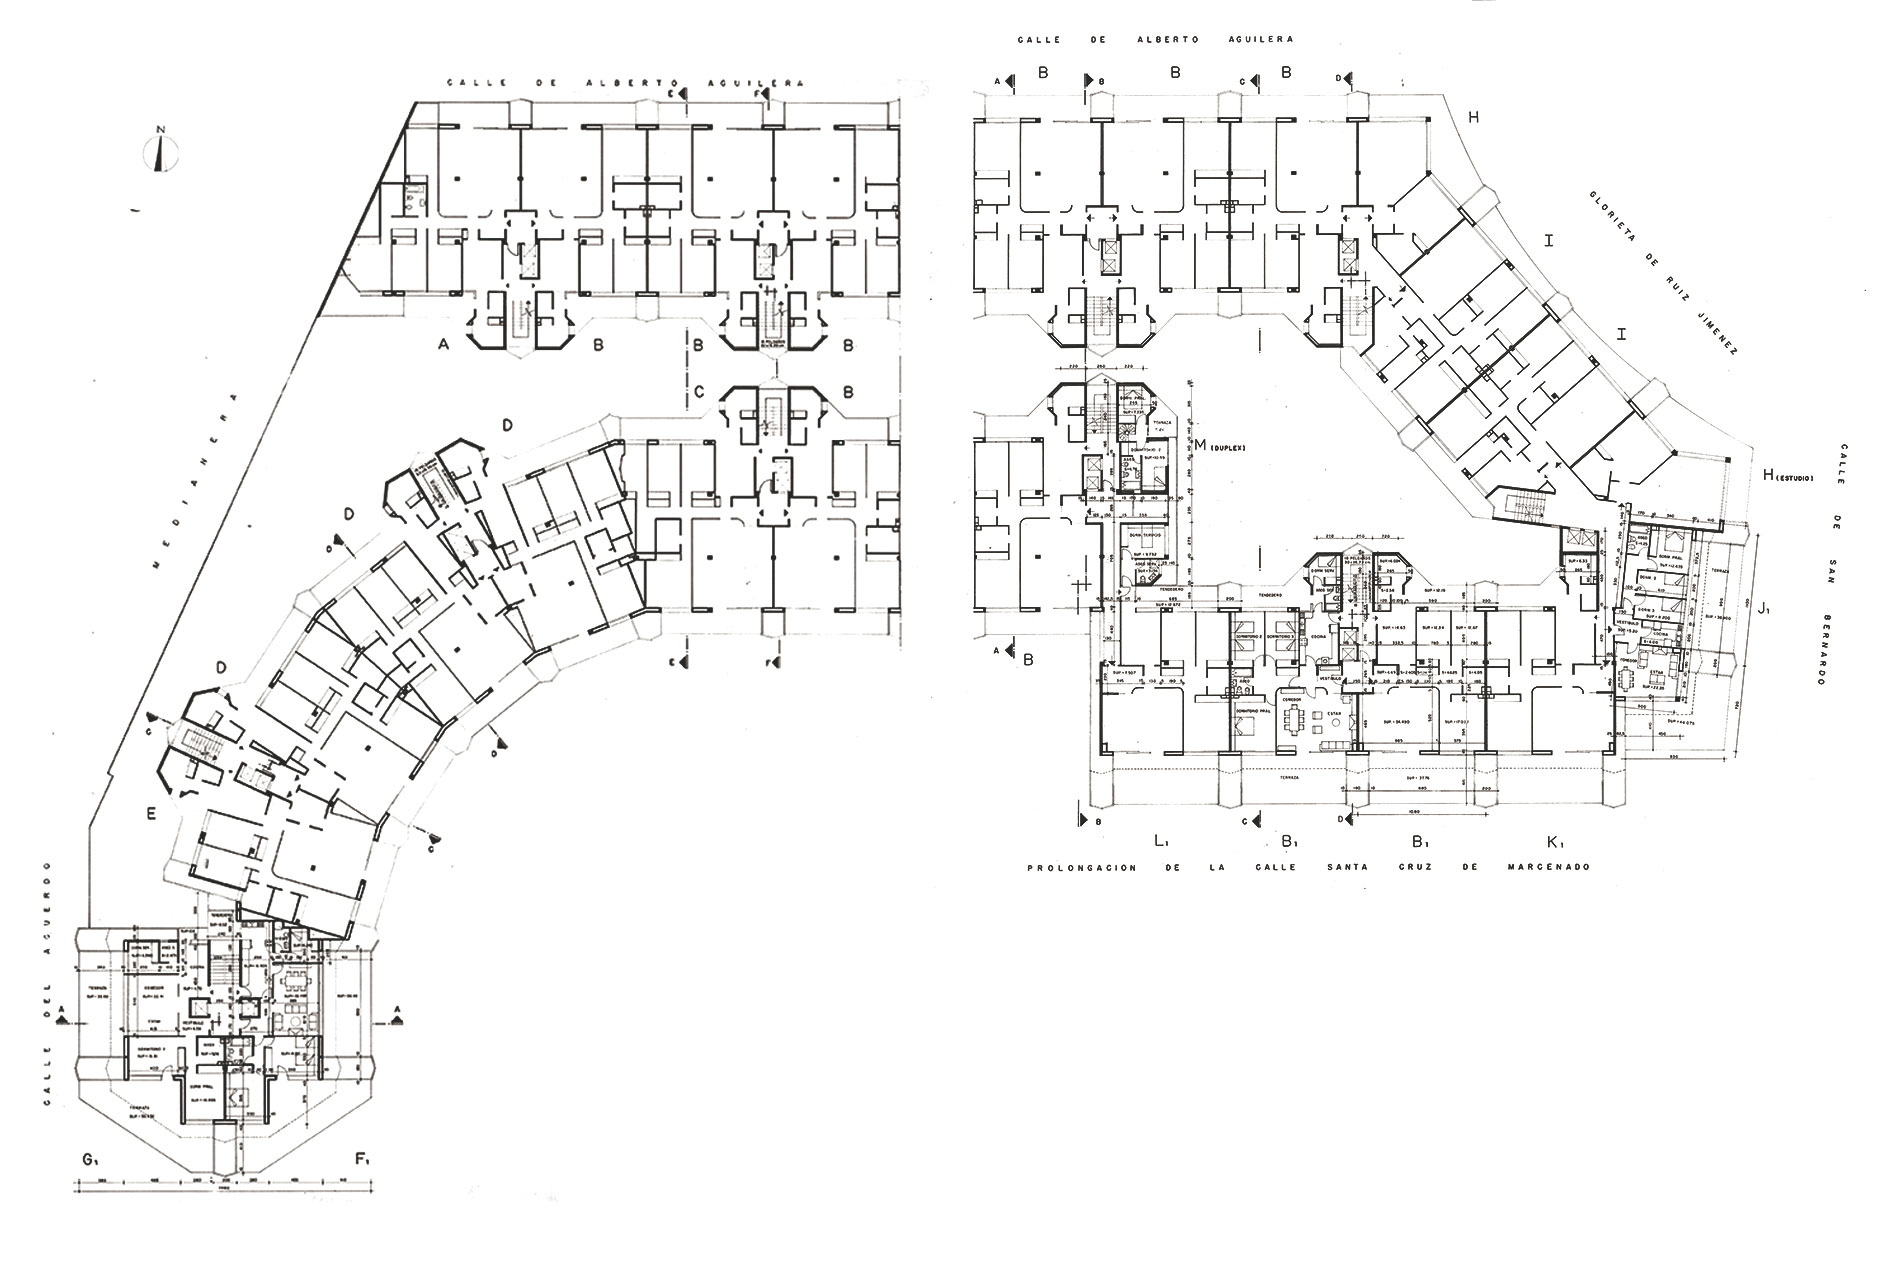 Princesa Apartments Plans / Fernando Higueras + Antonio Miró